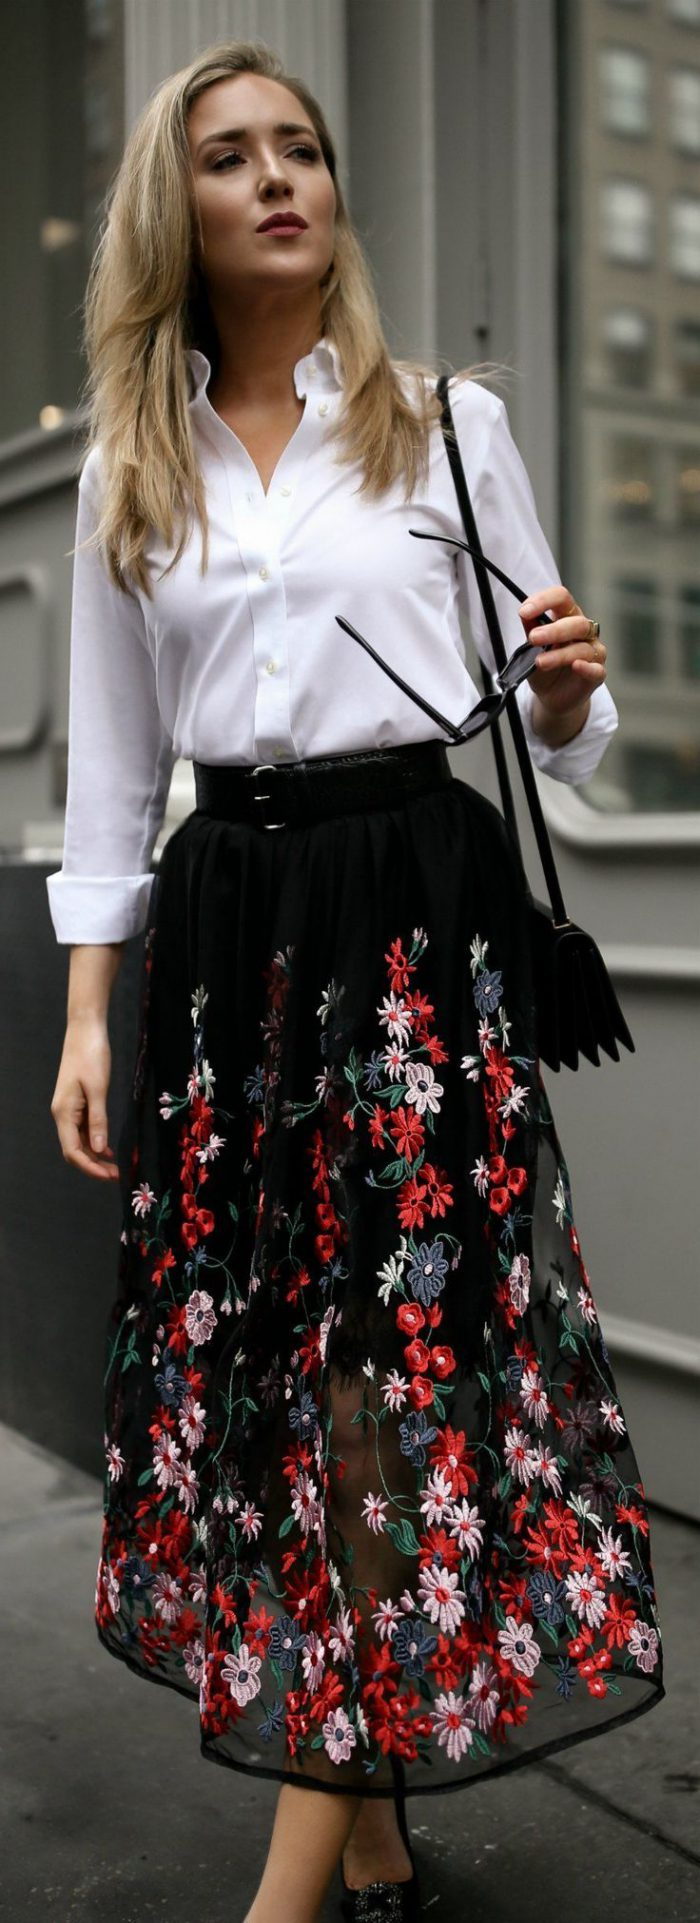 2018 High Waist Skirts For Women Street Style Looks (34)